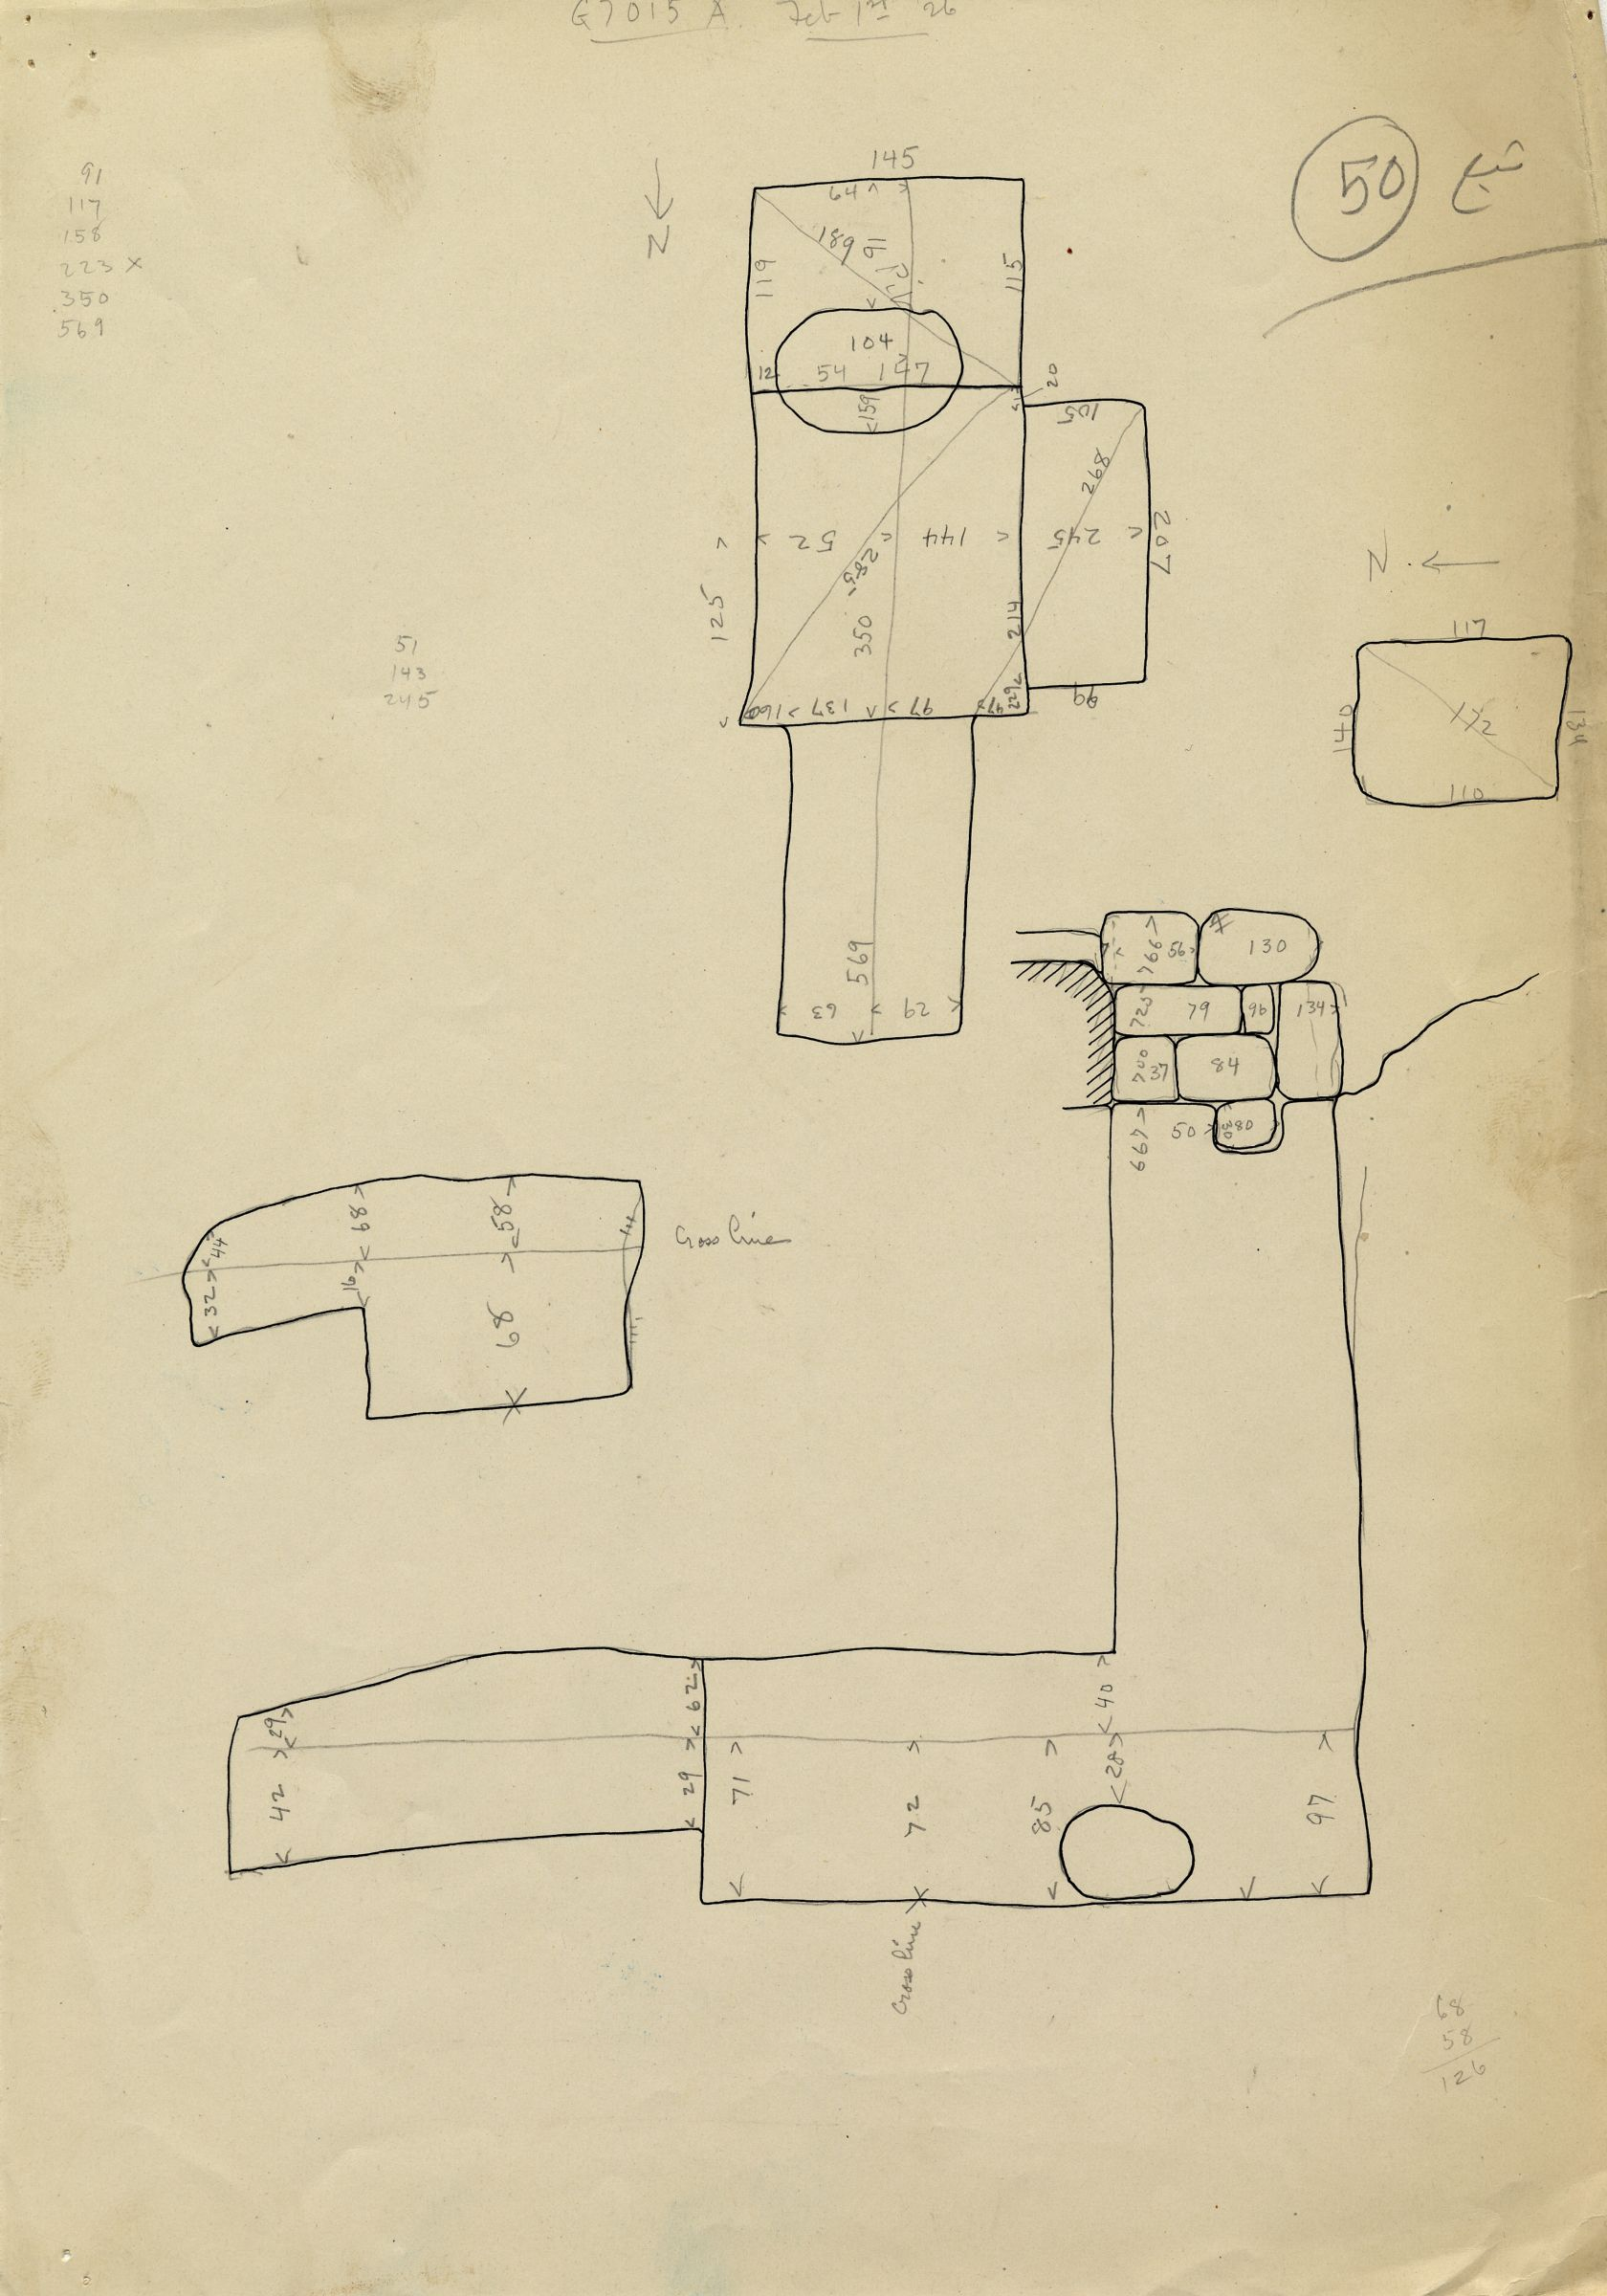 Maps and plans: G 7013, Shaft A